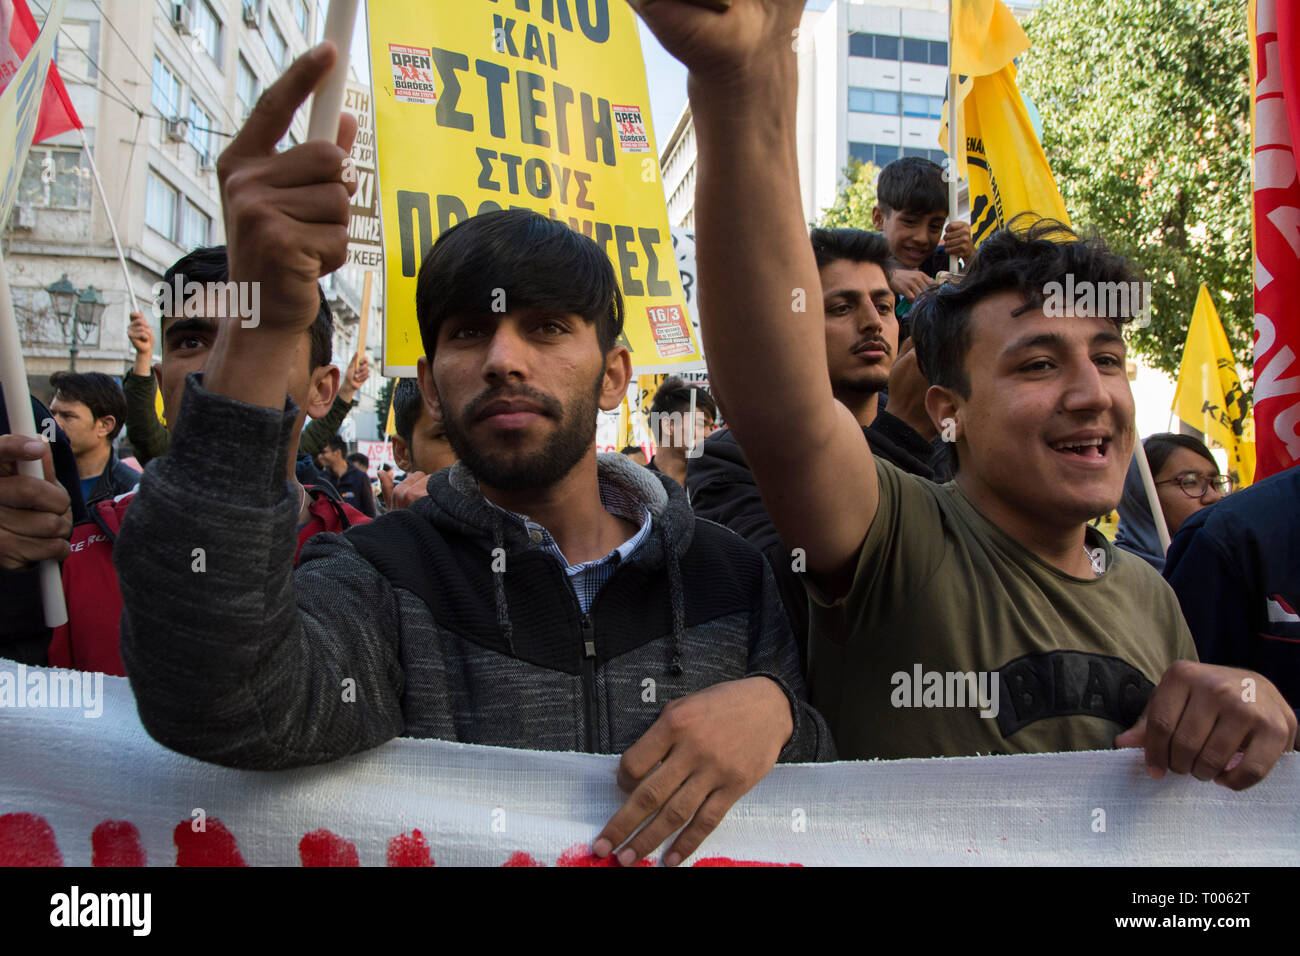 Athens, Greece. 16th March 2019. Migrants and refugees hold placards and shout slogans against racism and closed borders as well as against the greek neo-Nazi party Golden Dawn, currently on trial with accusations such as criminal organization, murder, possession of weapons and racist violence. Leftist and anti-racist organizations staged a rally on the occasion of the International Day against racism to demonstrate against discrimination and racist policies and behaviours. © Nikolas Georgiou / Alamy Live News - Stock Image